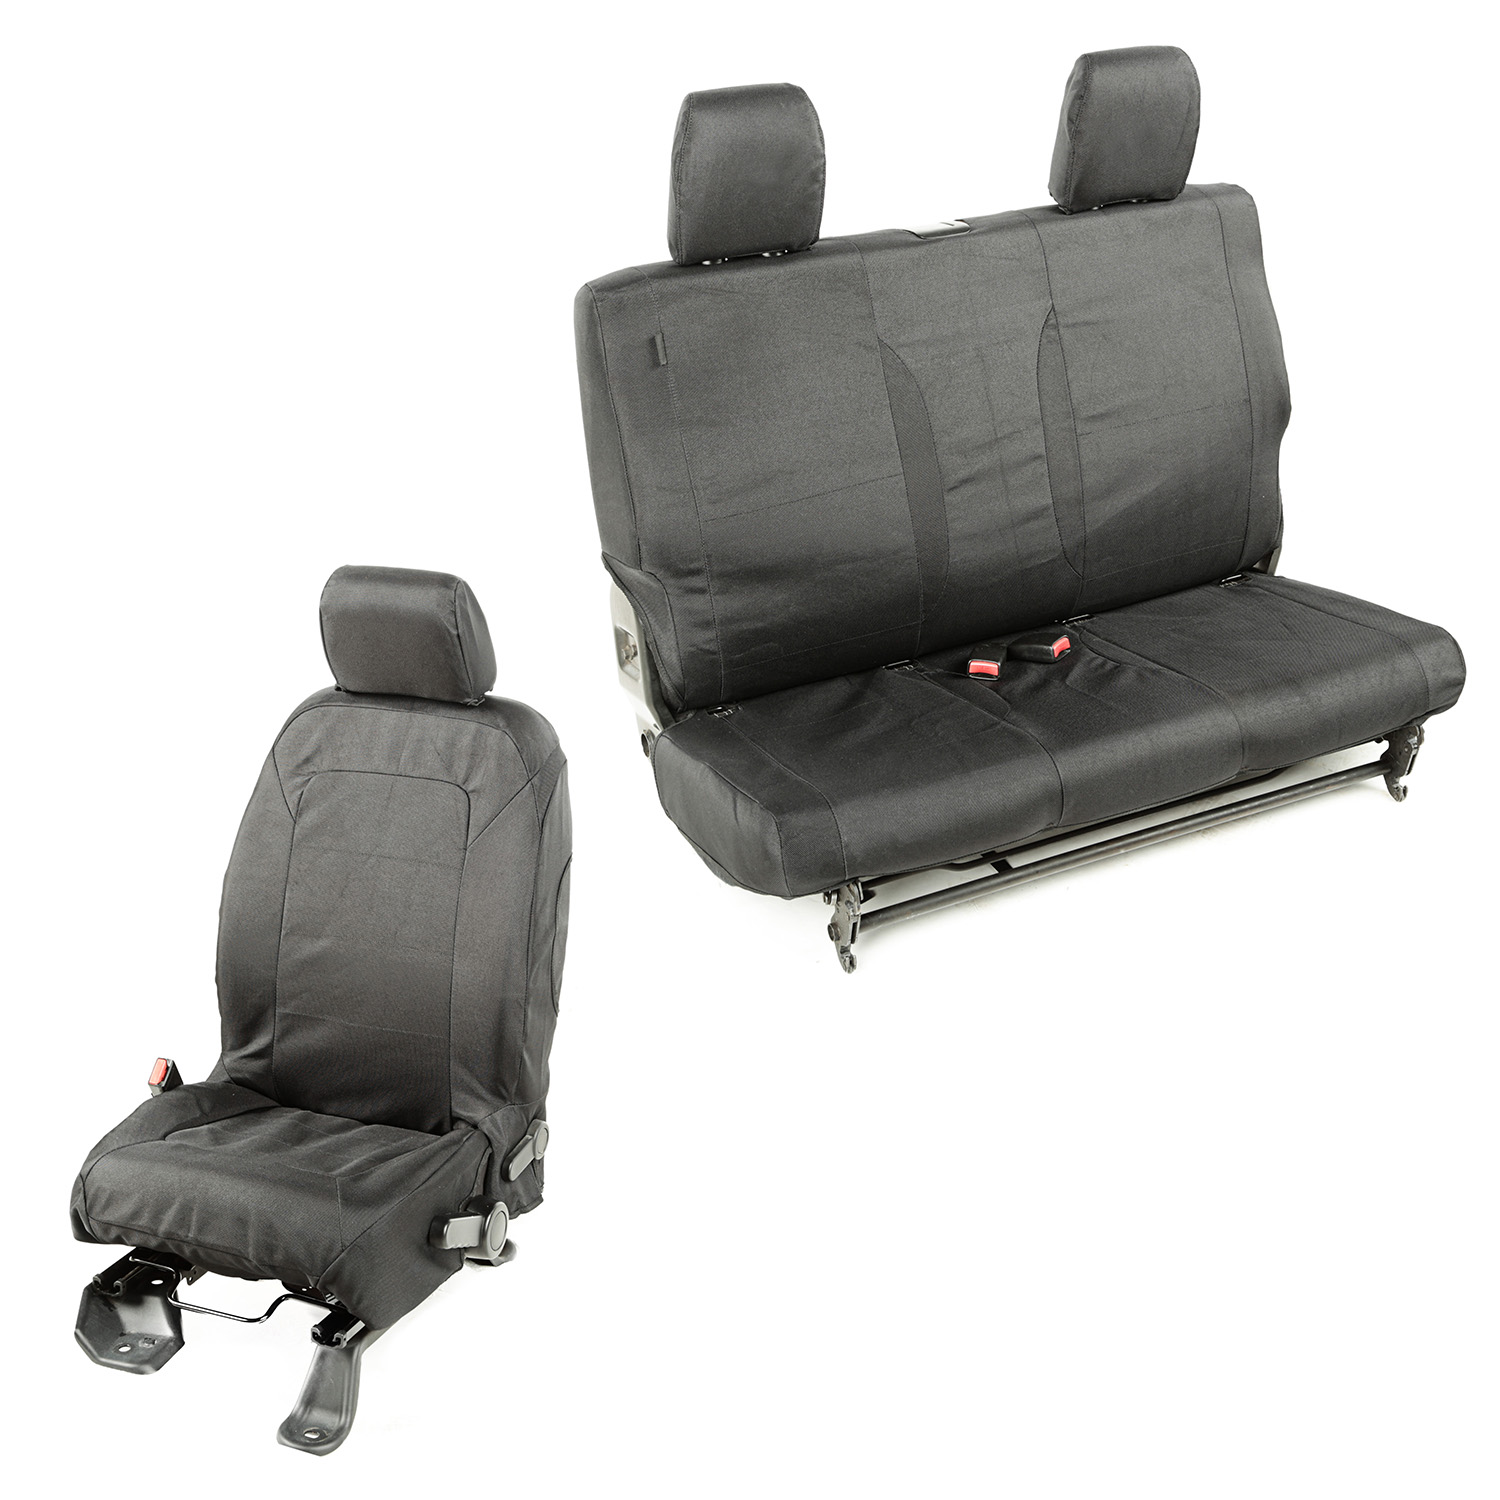 Rugged Ridge Elite Ballistic Seat Cover Set - JK 2DR